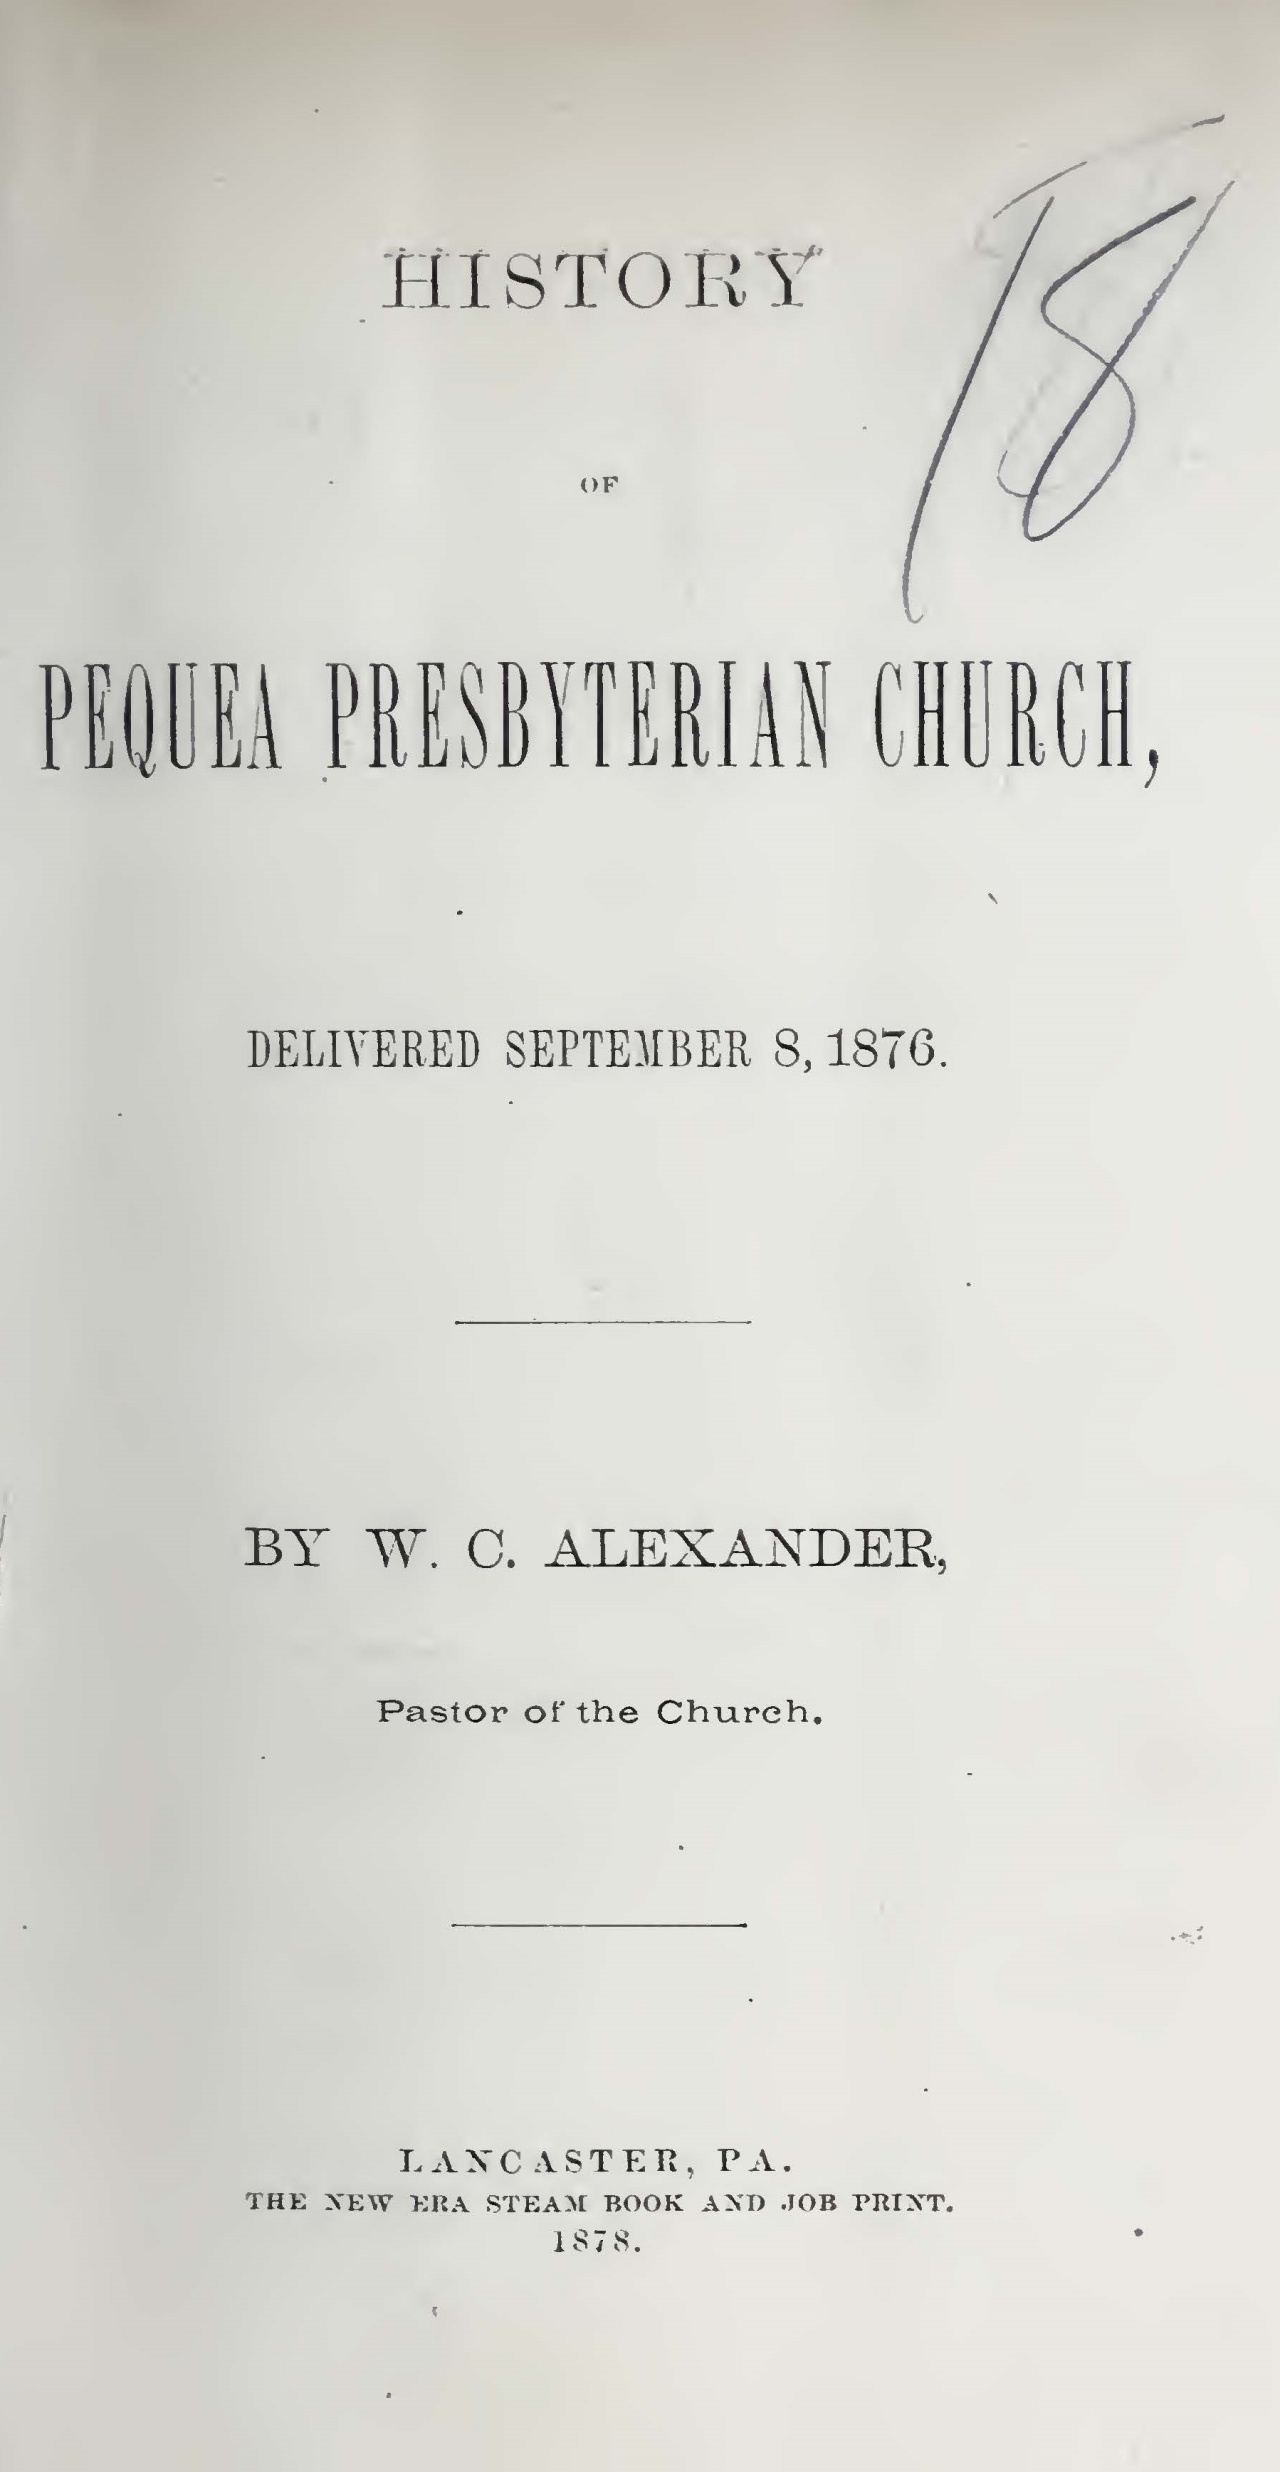 Alexander, William Clarke, History of the Pequea Presbyterian Church Title Page.jpg